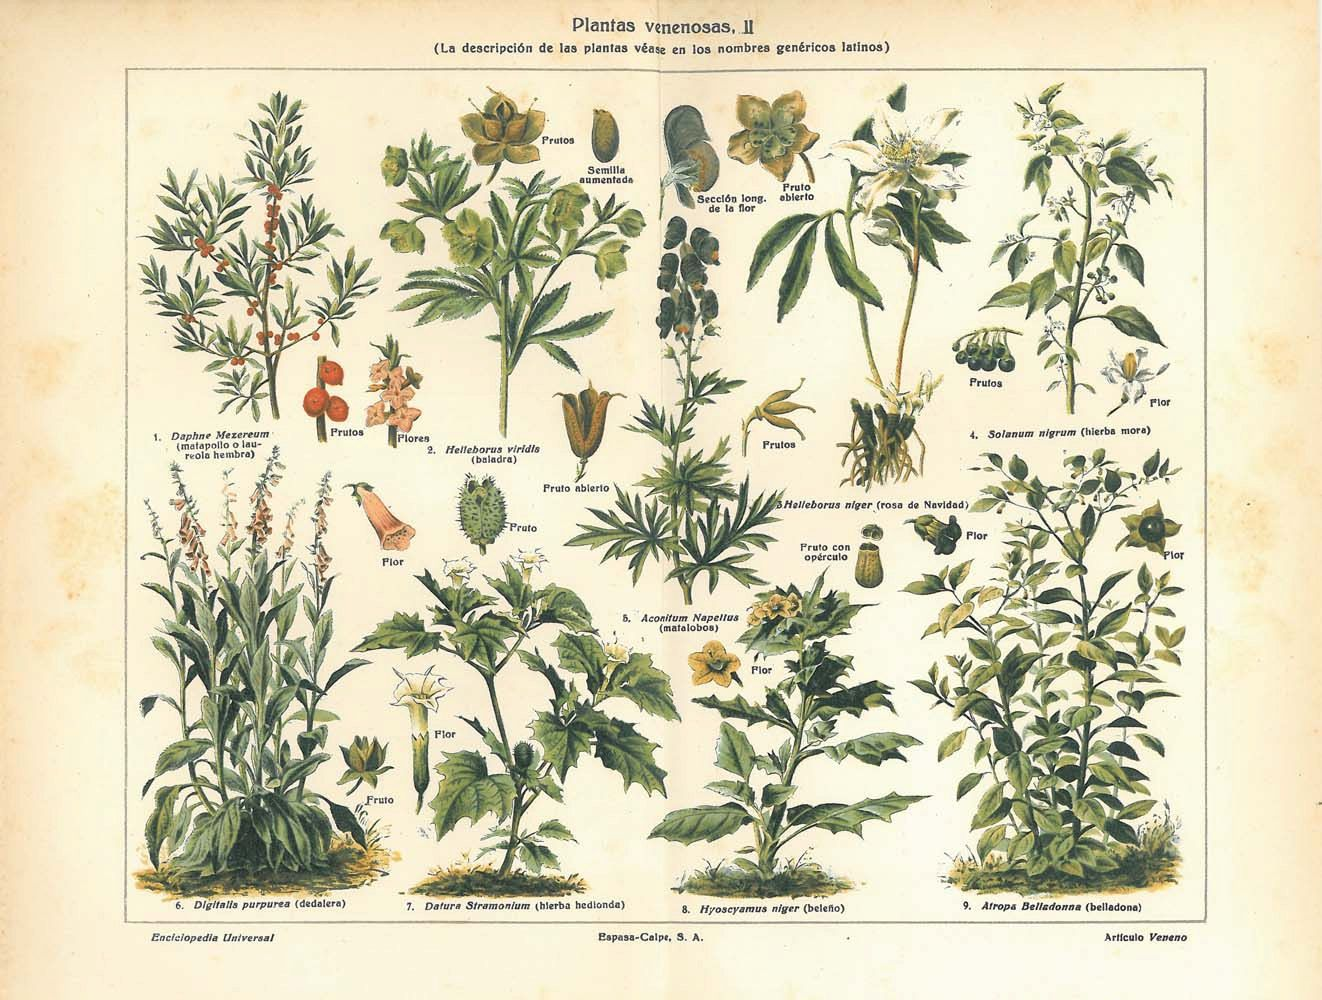 Botanical Print Poisonous Plants Vintage Chromolithograph1923 Via Carambas Shop Botanical Prints Poisonous Plants Chromolithograph